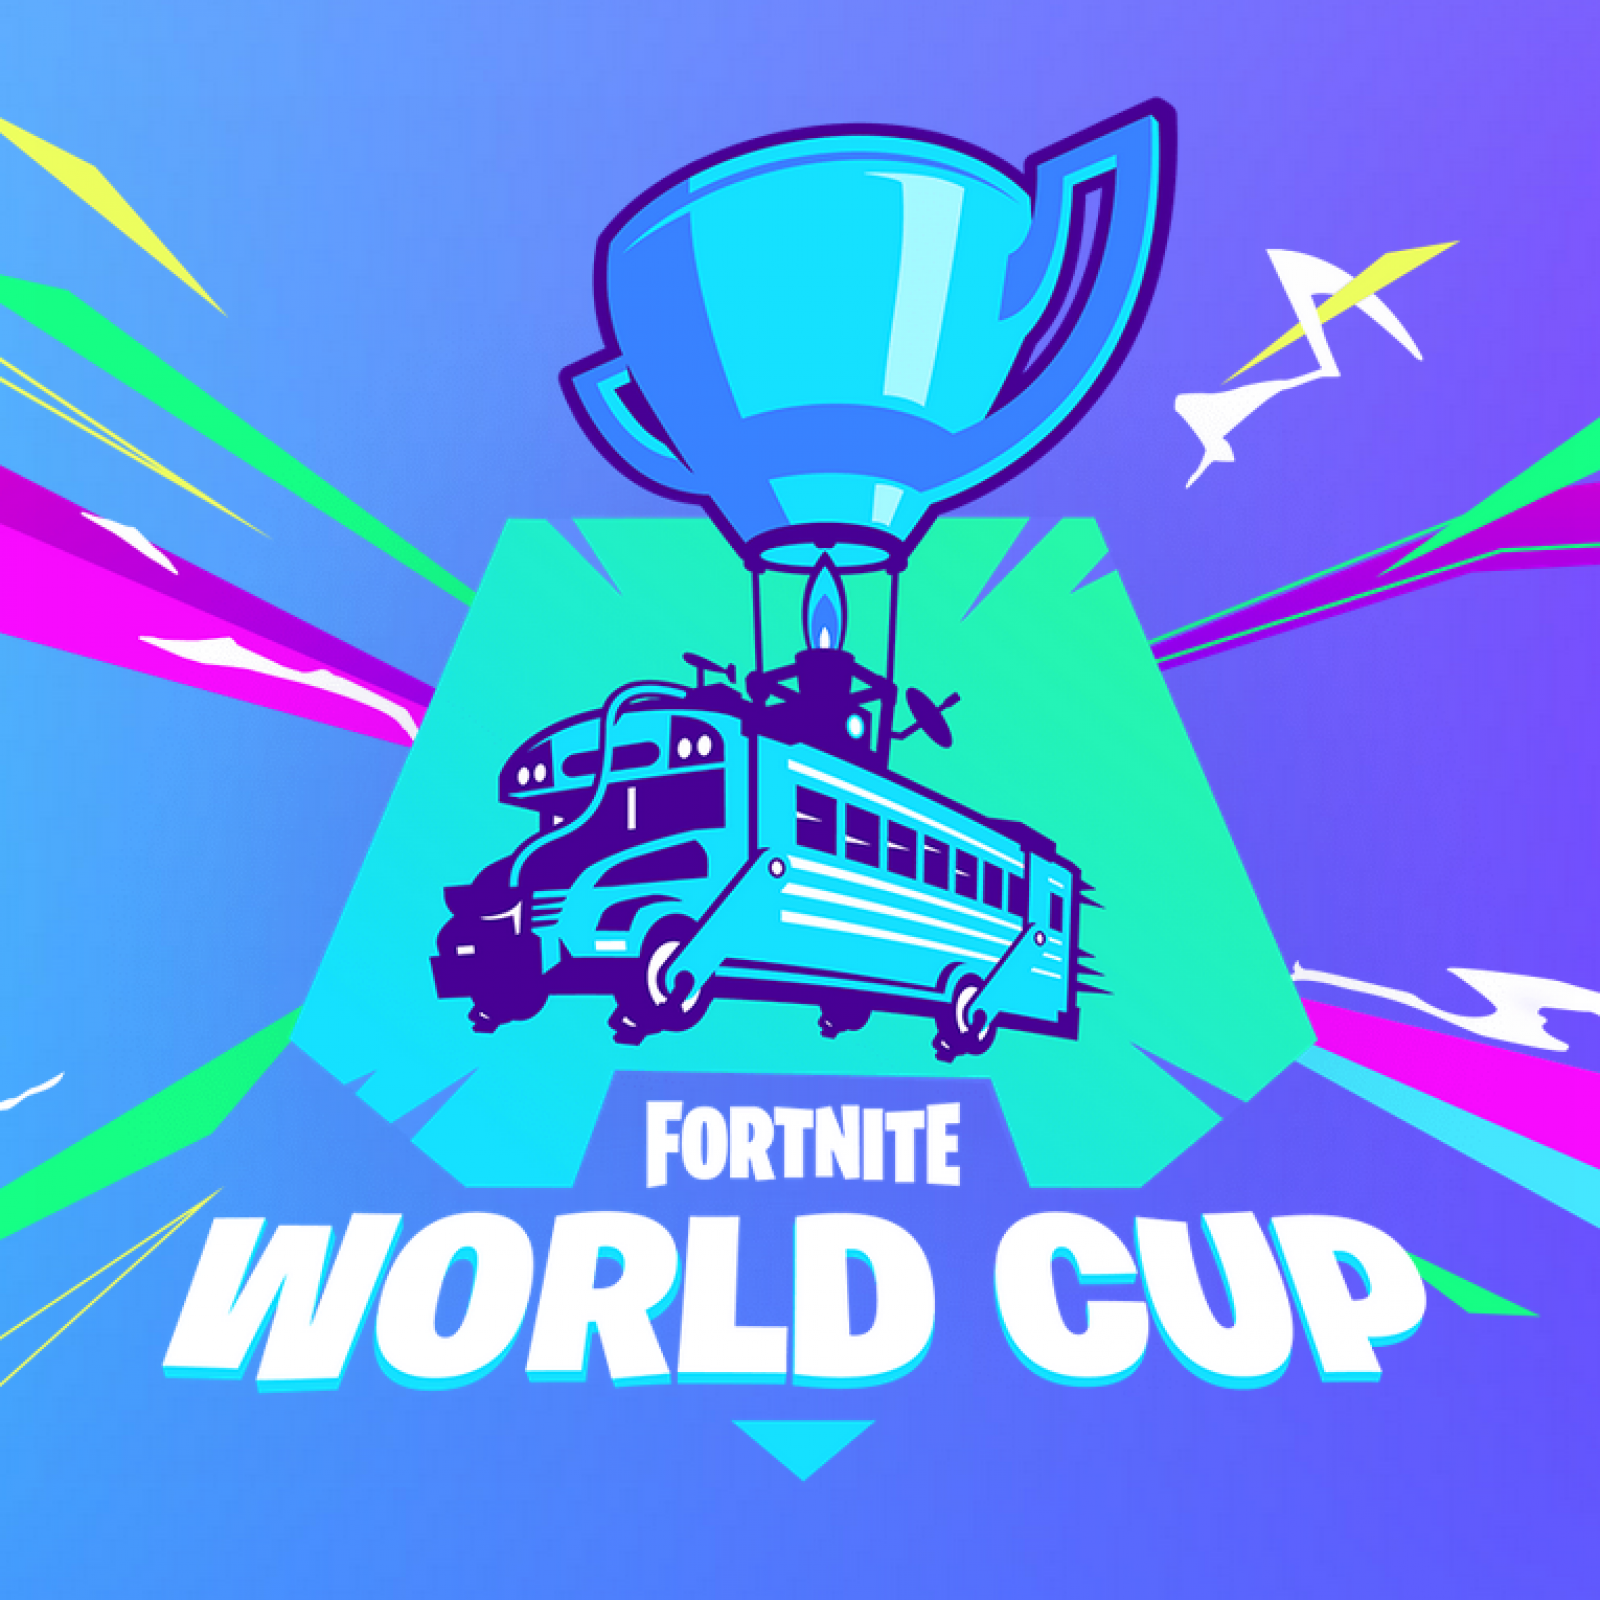 Fortnite World Cup Logo Hd Png Download Transparent Png Image Pngitem